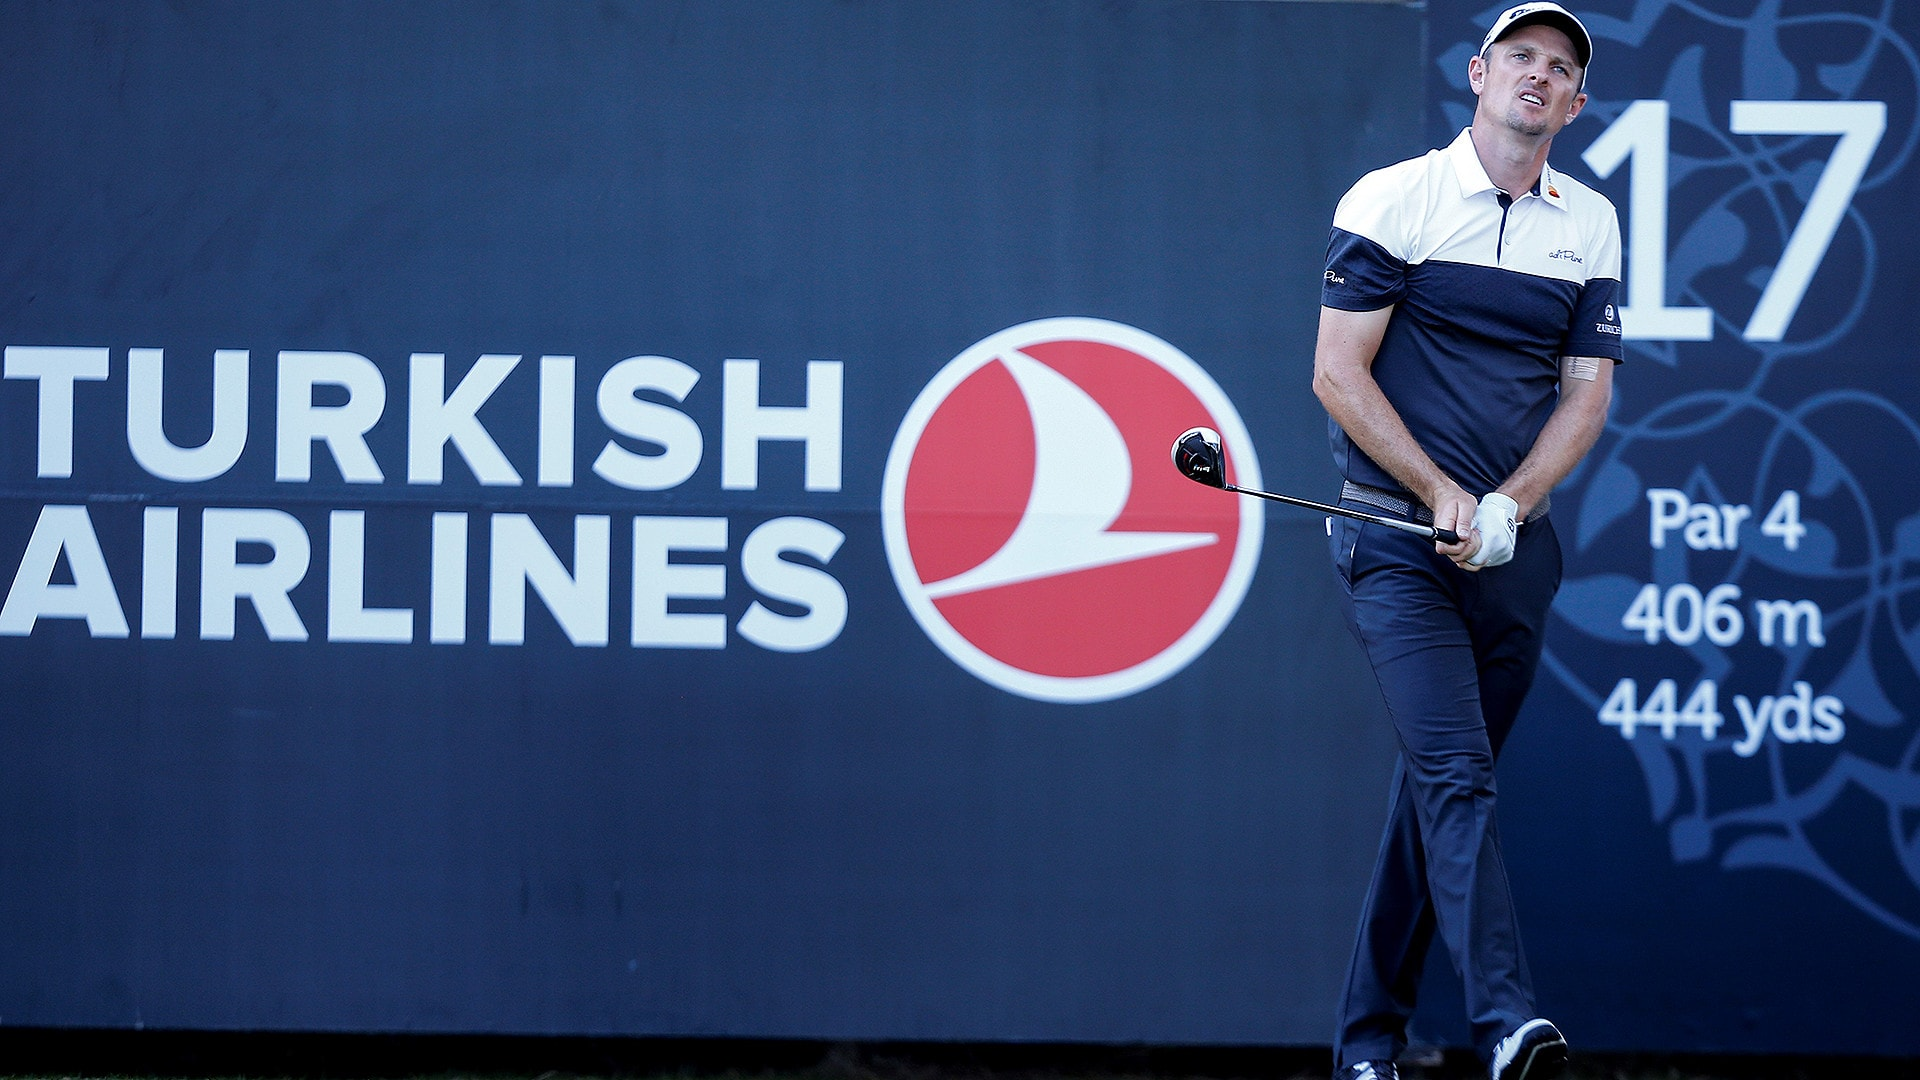 Justin Rose at 2018 Turkish Airlines Open